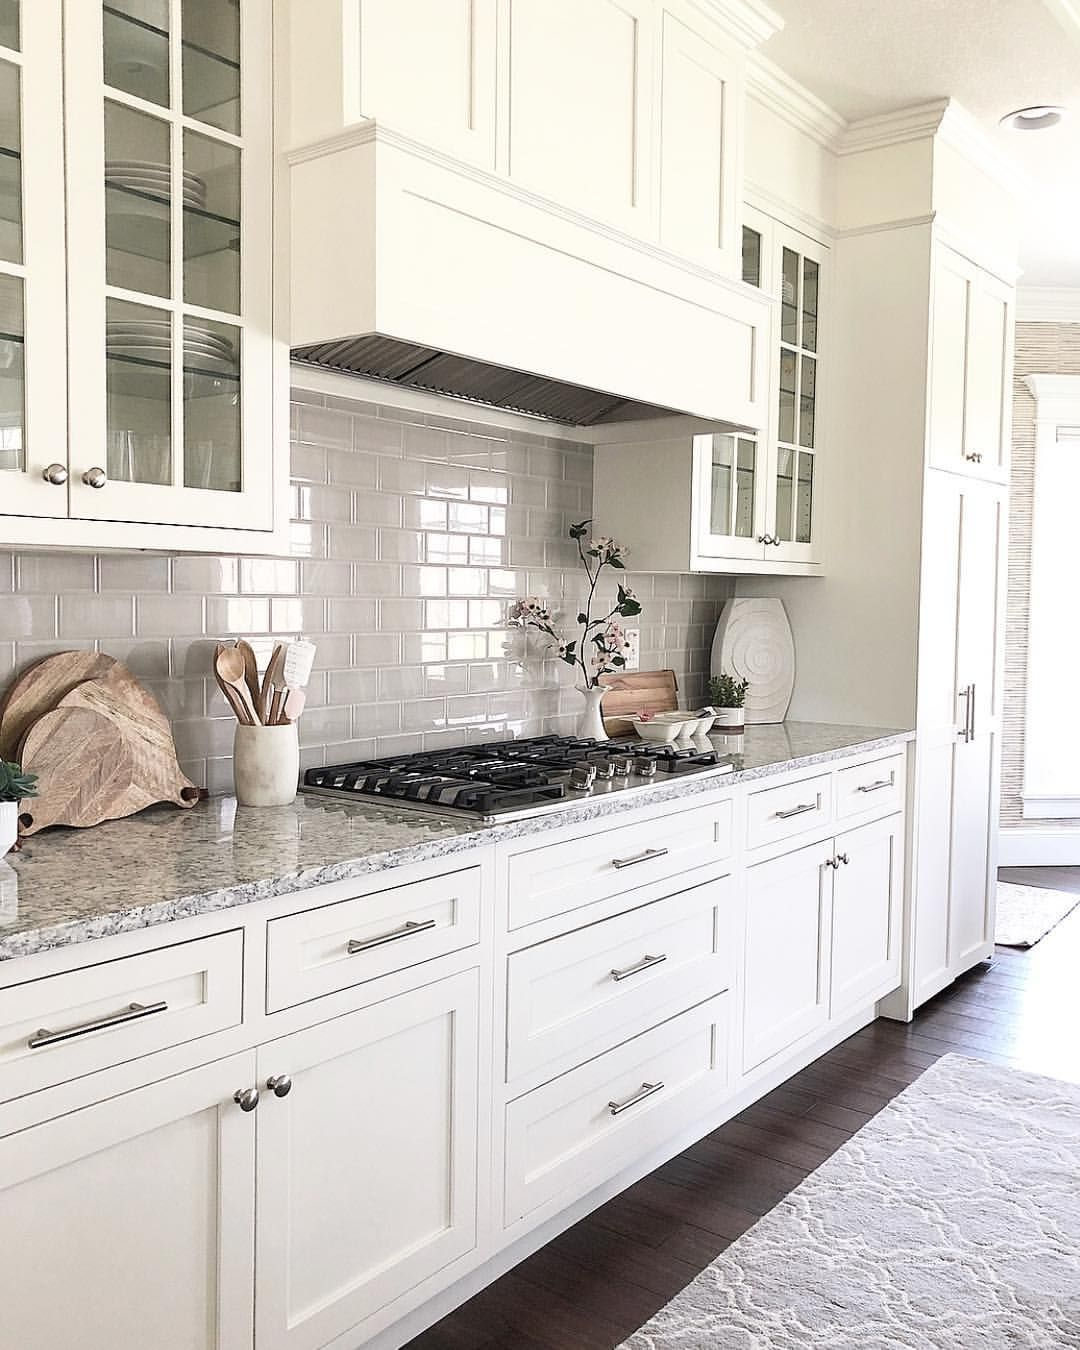 Carolineondesign Benjamin Moore White Dove White Kitchen Cabinets Grey Tile Backsp White Shaker Kitchen Cabinets White Shaker Kitchen Cream Kitchen Cabinets